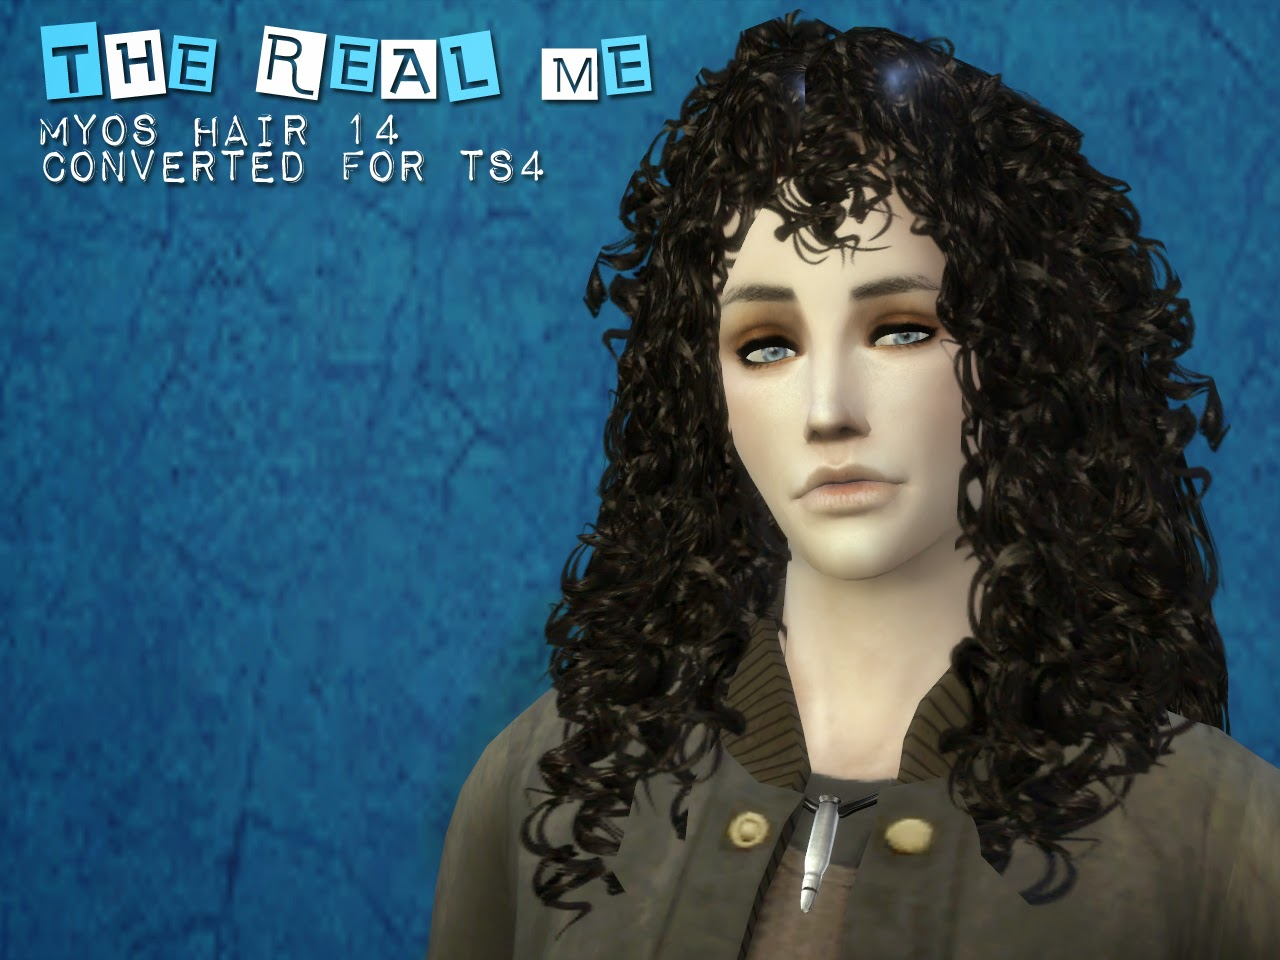 My Sims 4 Blog: Myos 14 Hair Conversion for Males and Females by